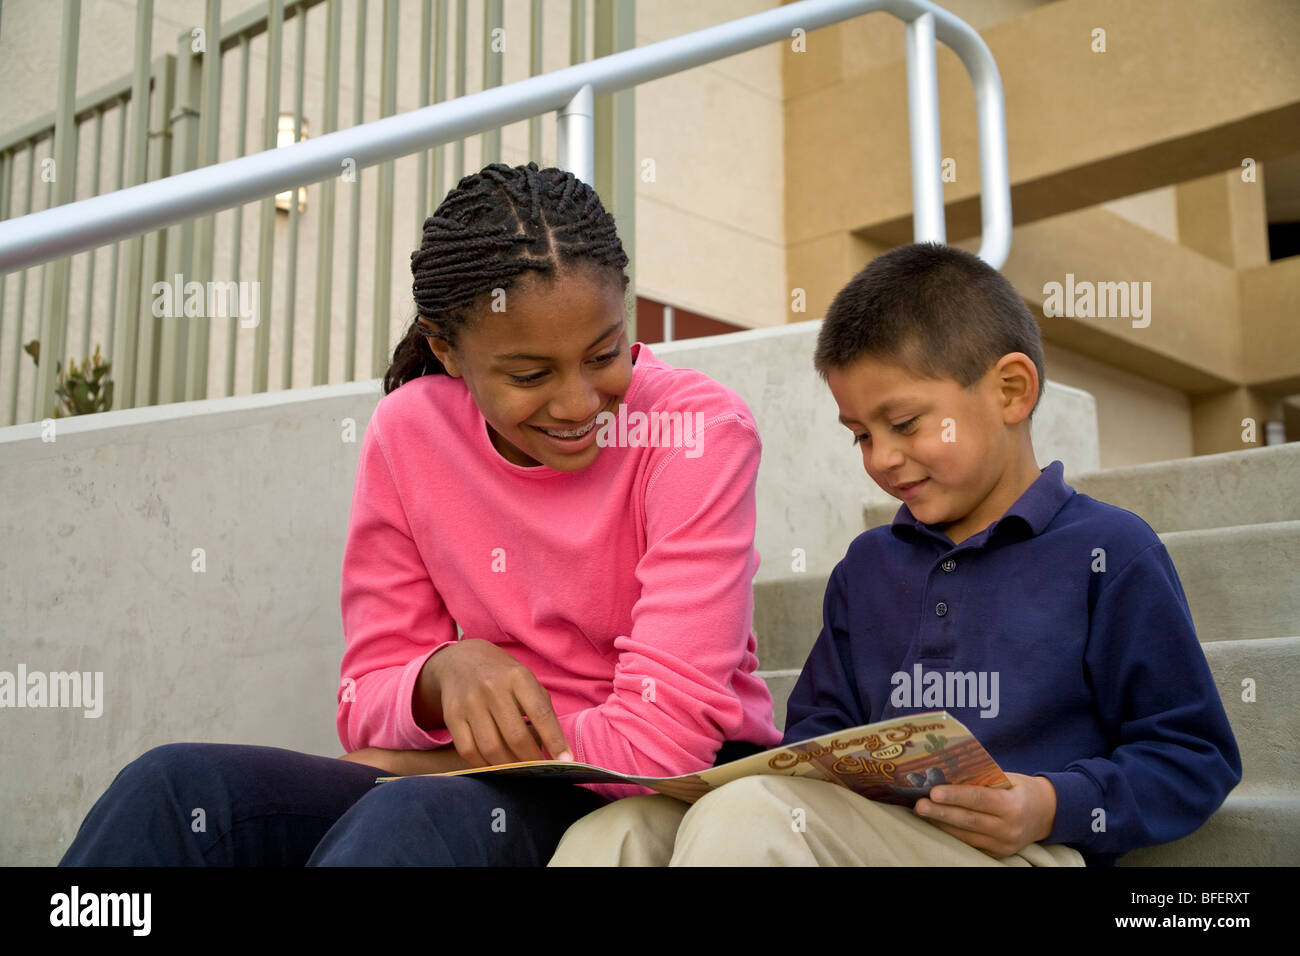 African American teen girl reads a book to an Hispanic boy on steps child helping another diverse diversity California - Stock Image